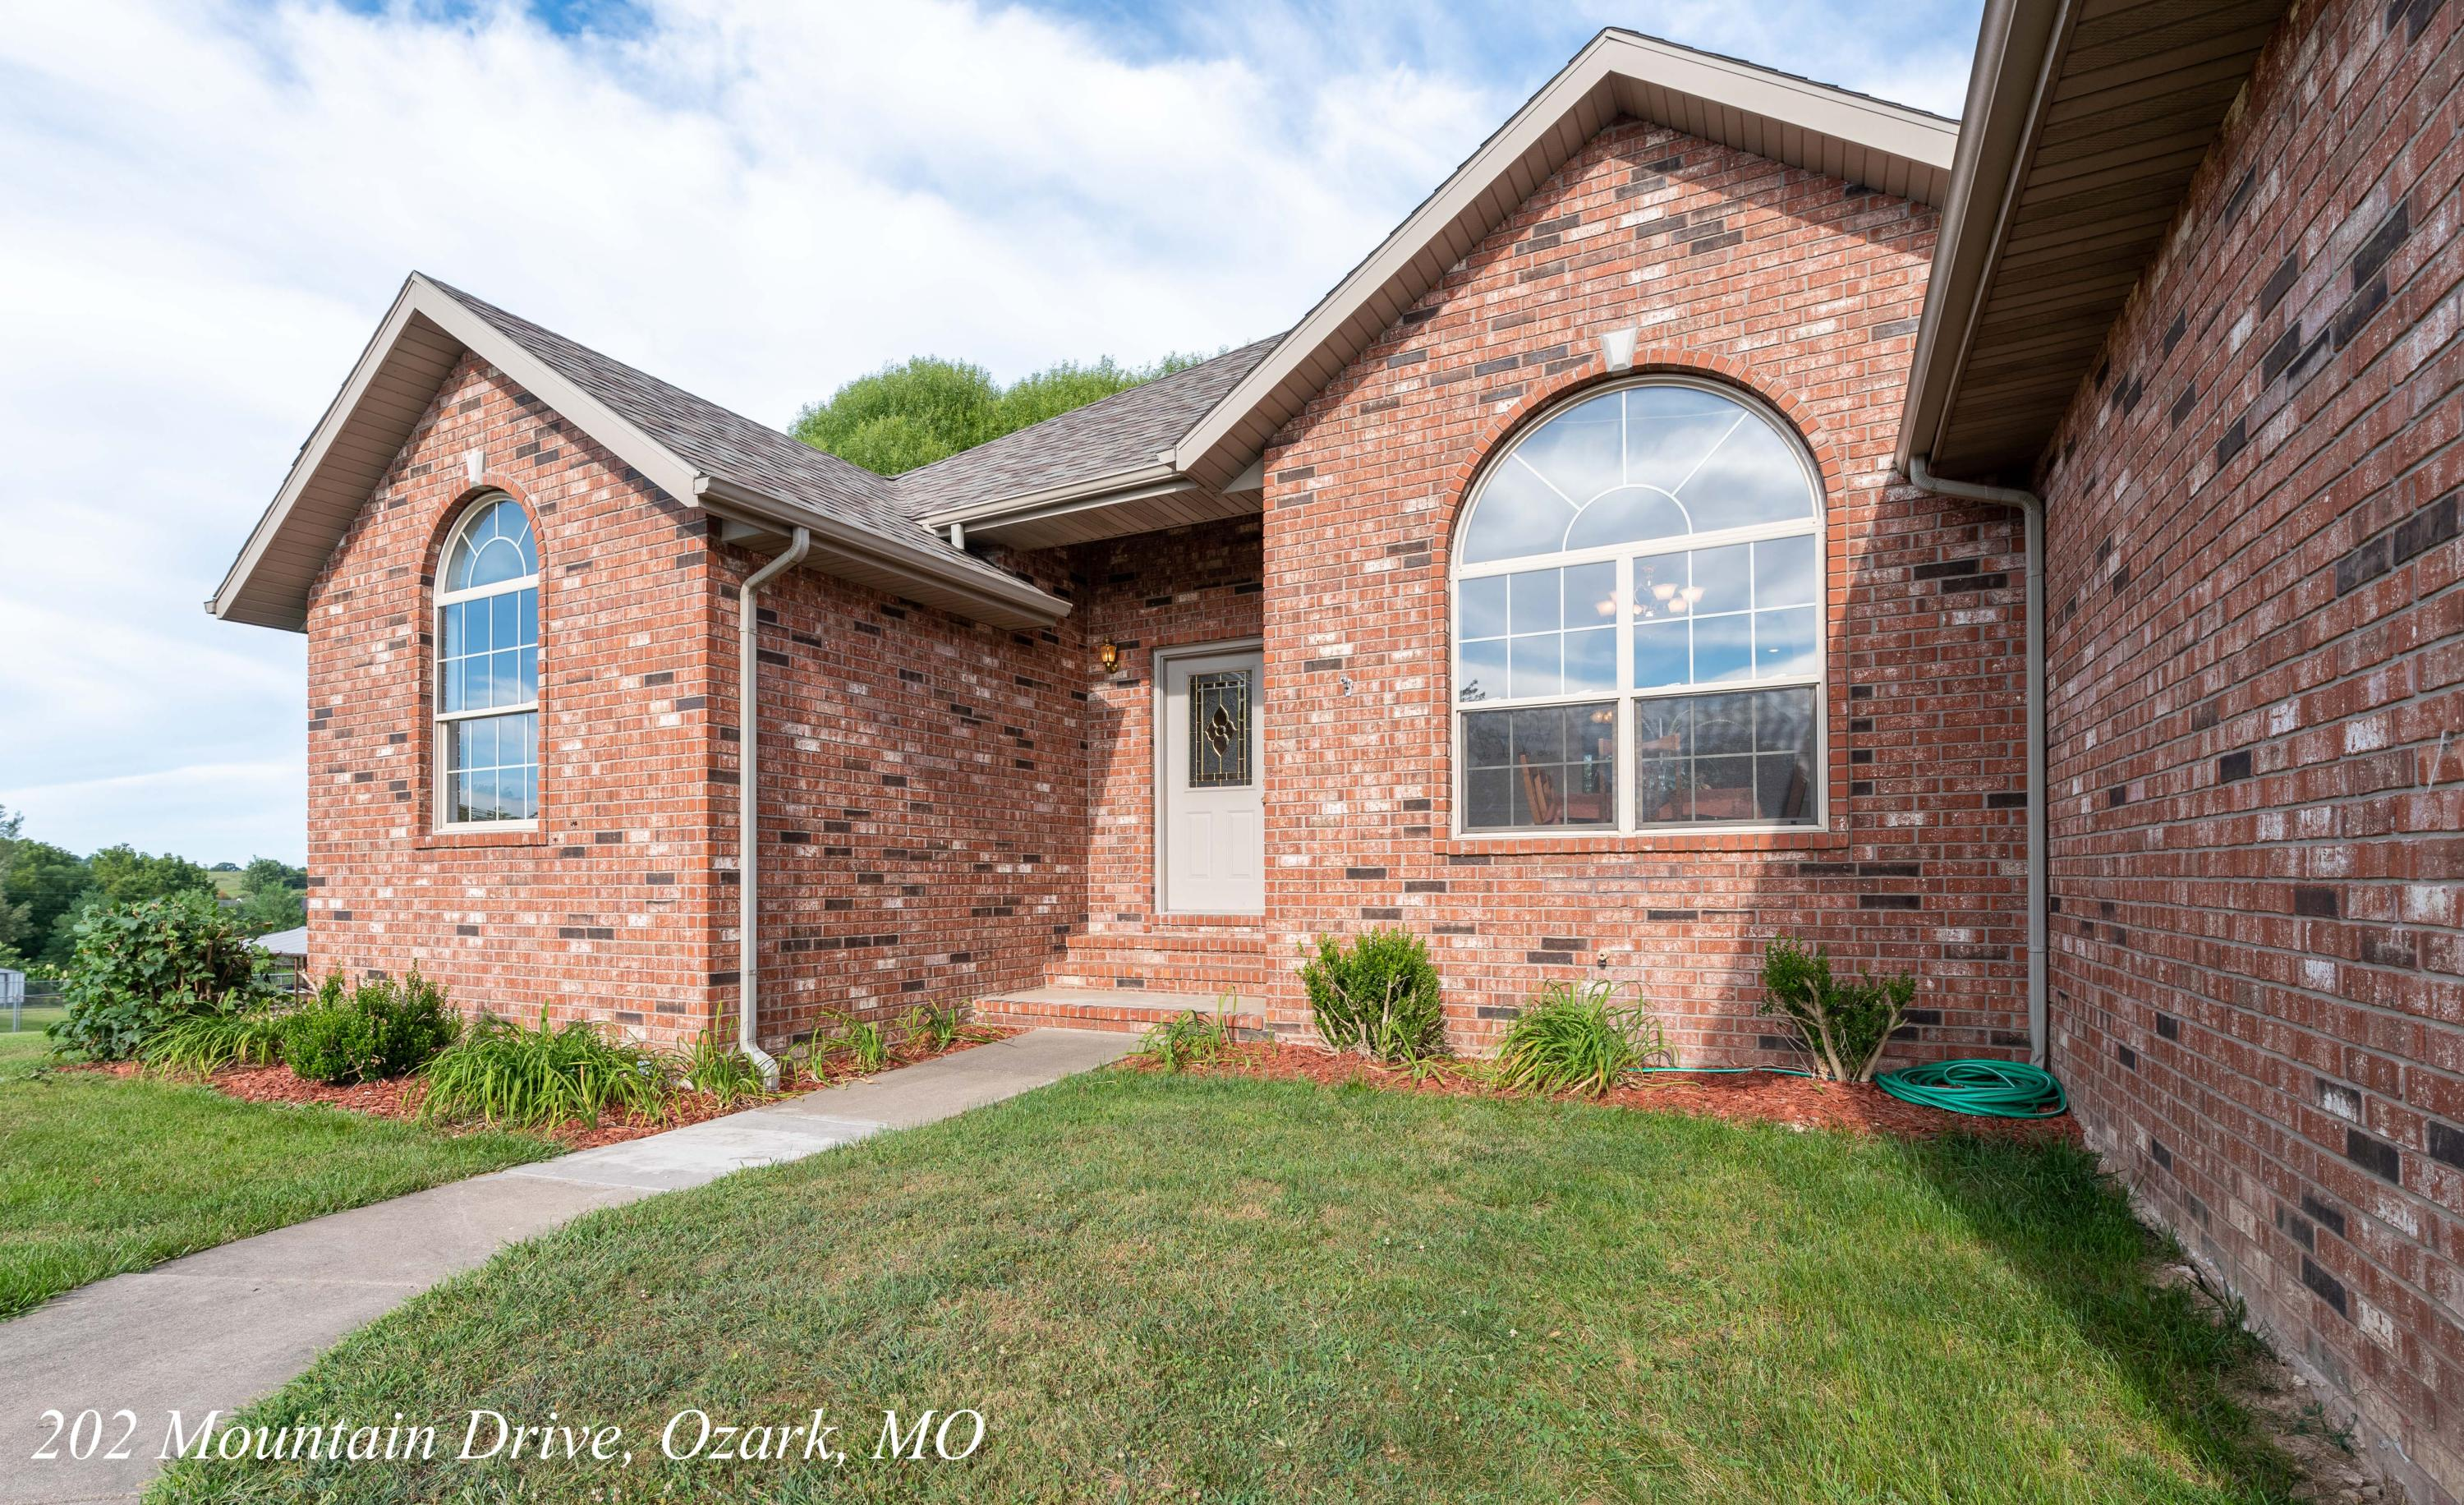 202 Mountain Drive Ozark, MO 65721